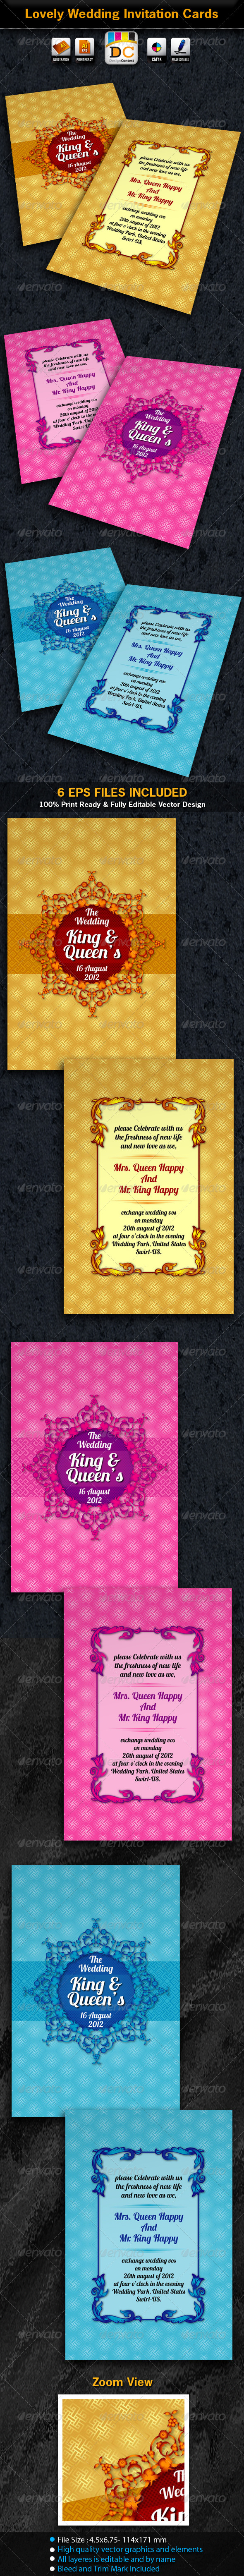 Lovely Wedding/Marriage Invitation Card Sets - Weddings Cards & Invites